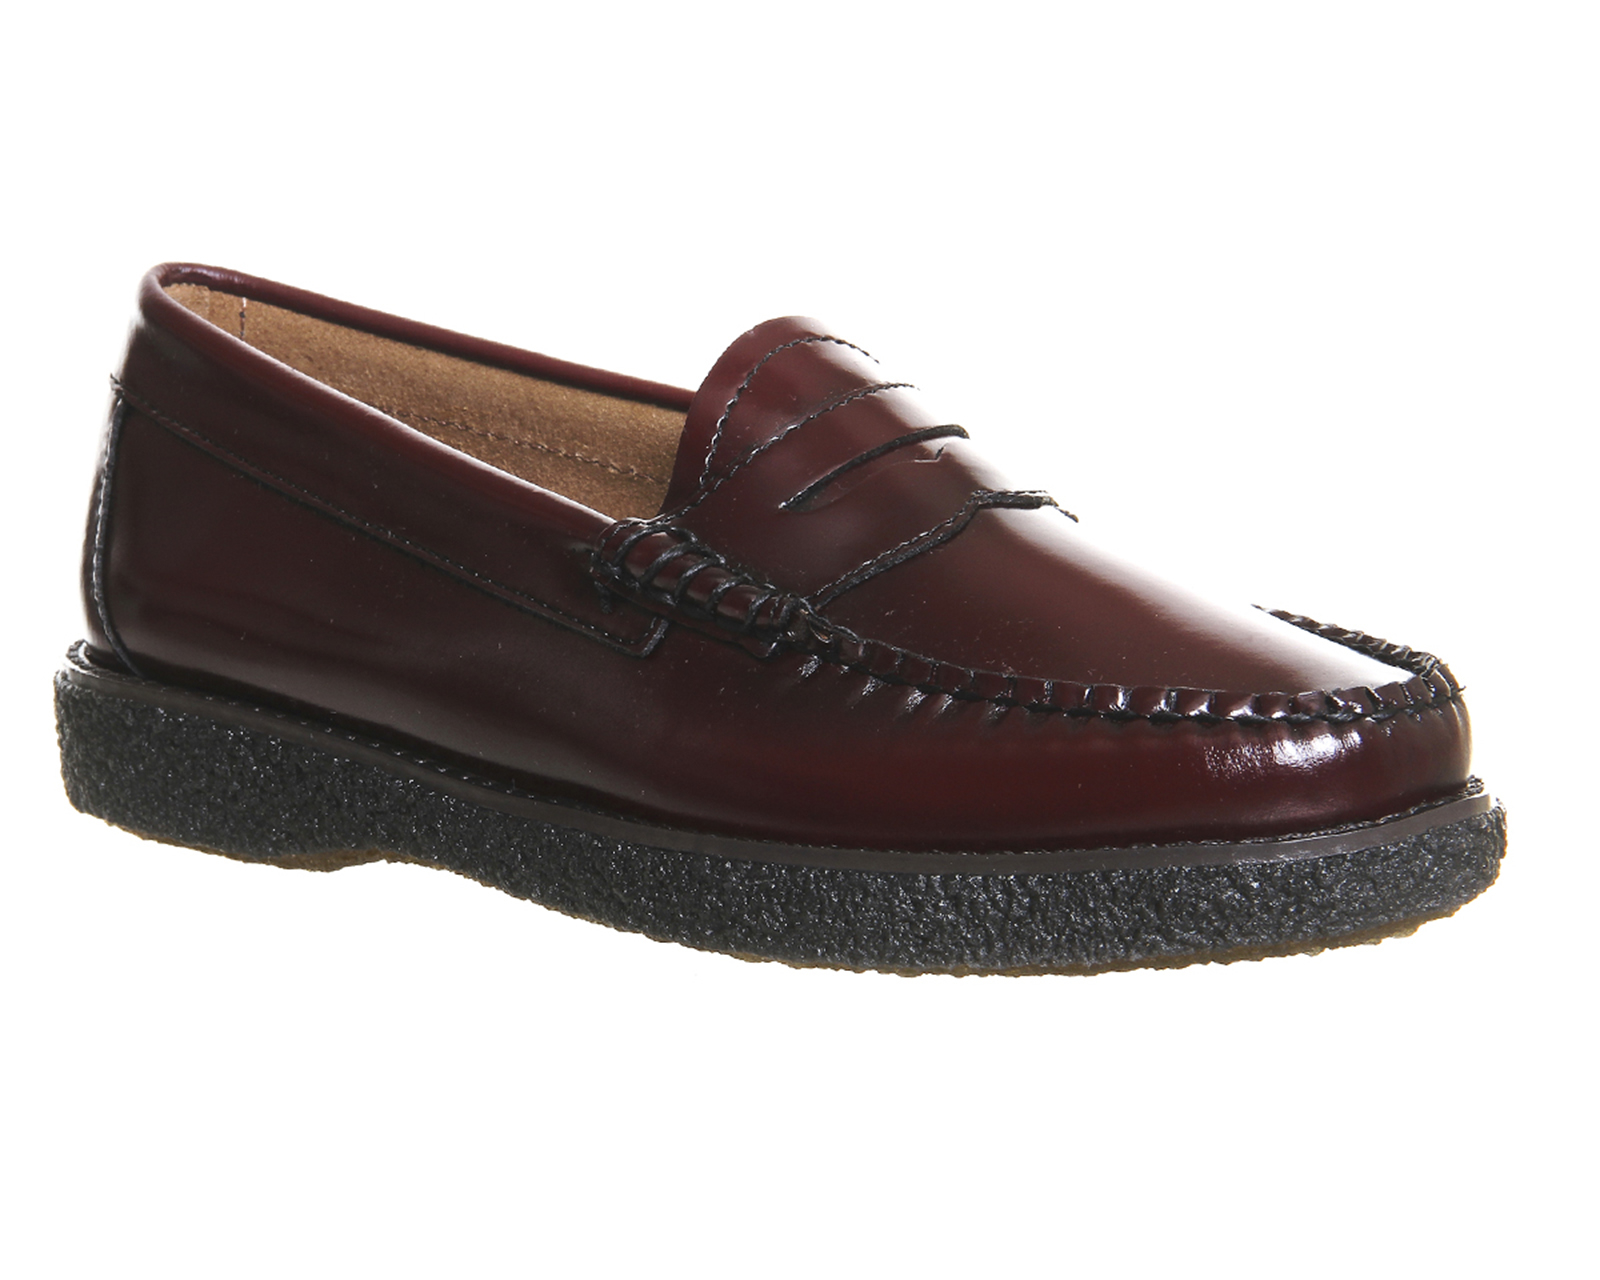 2f769e142d3 G.H.BASS Crepe Sole Penny Loafers in Purple - Lyst